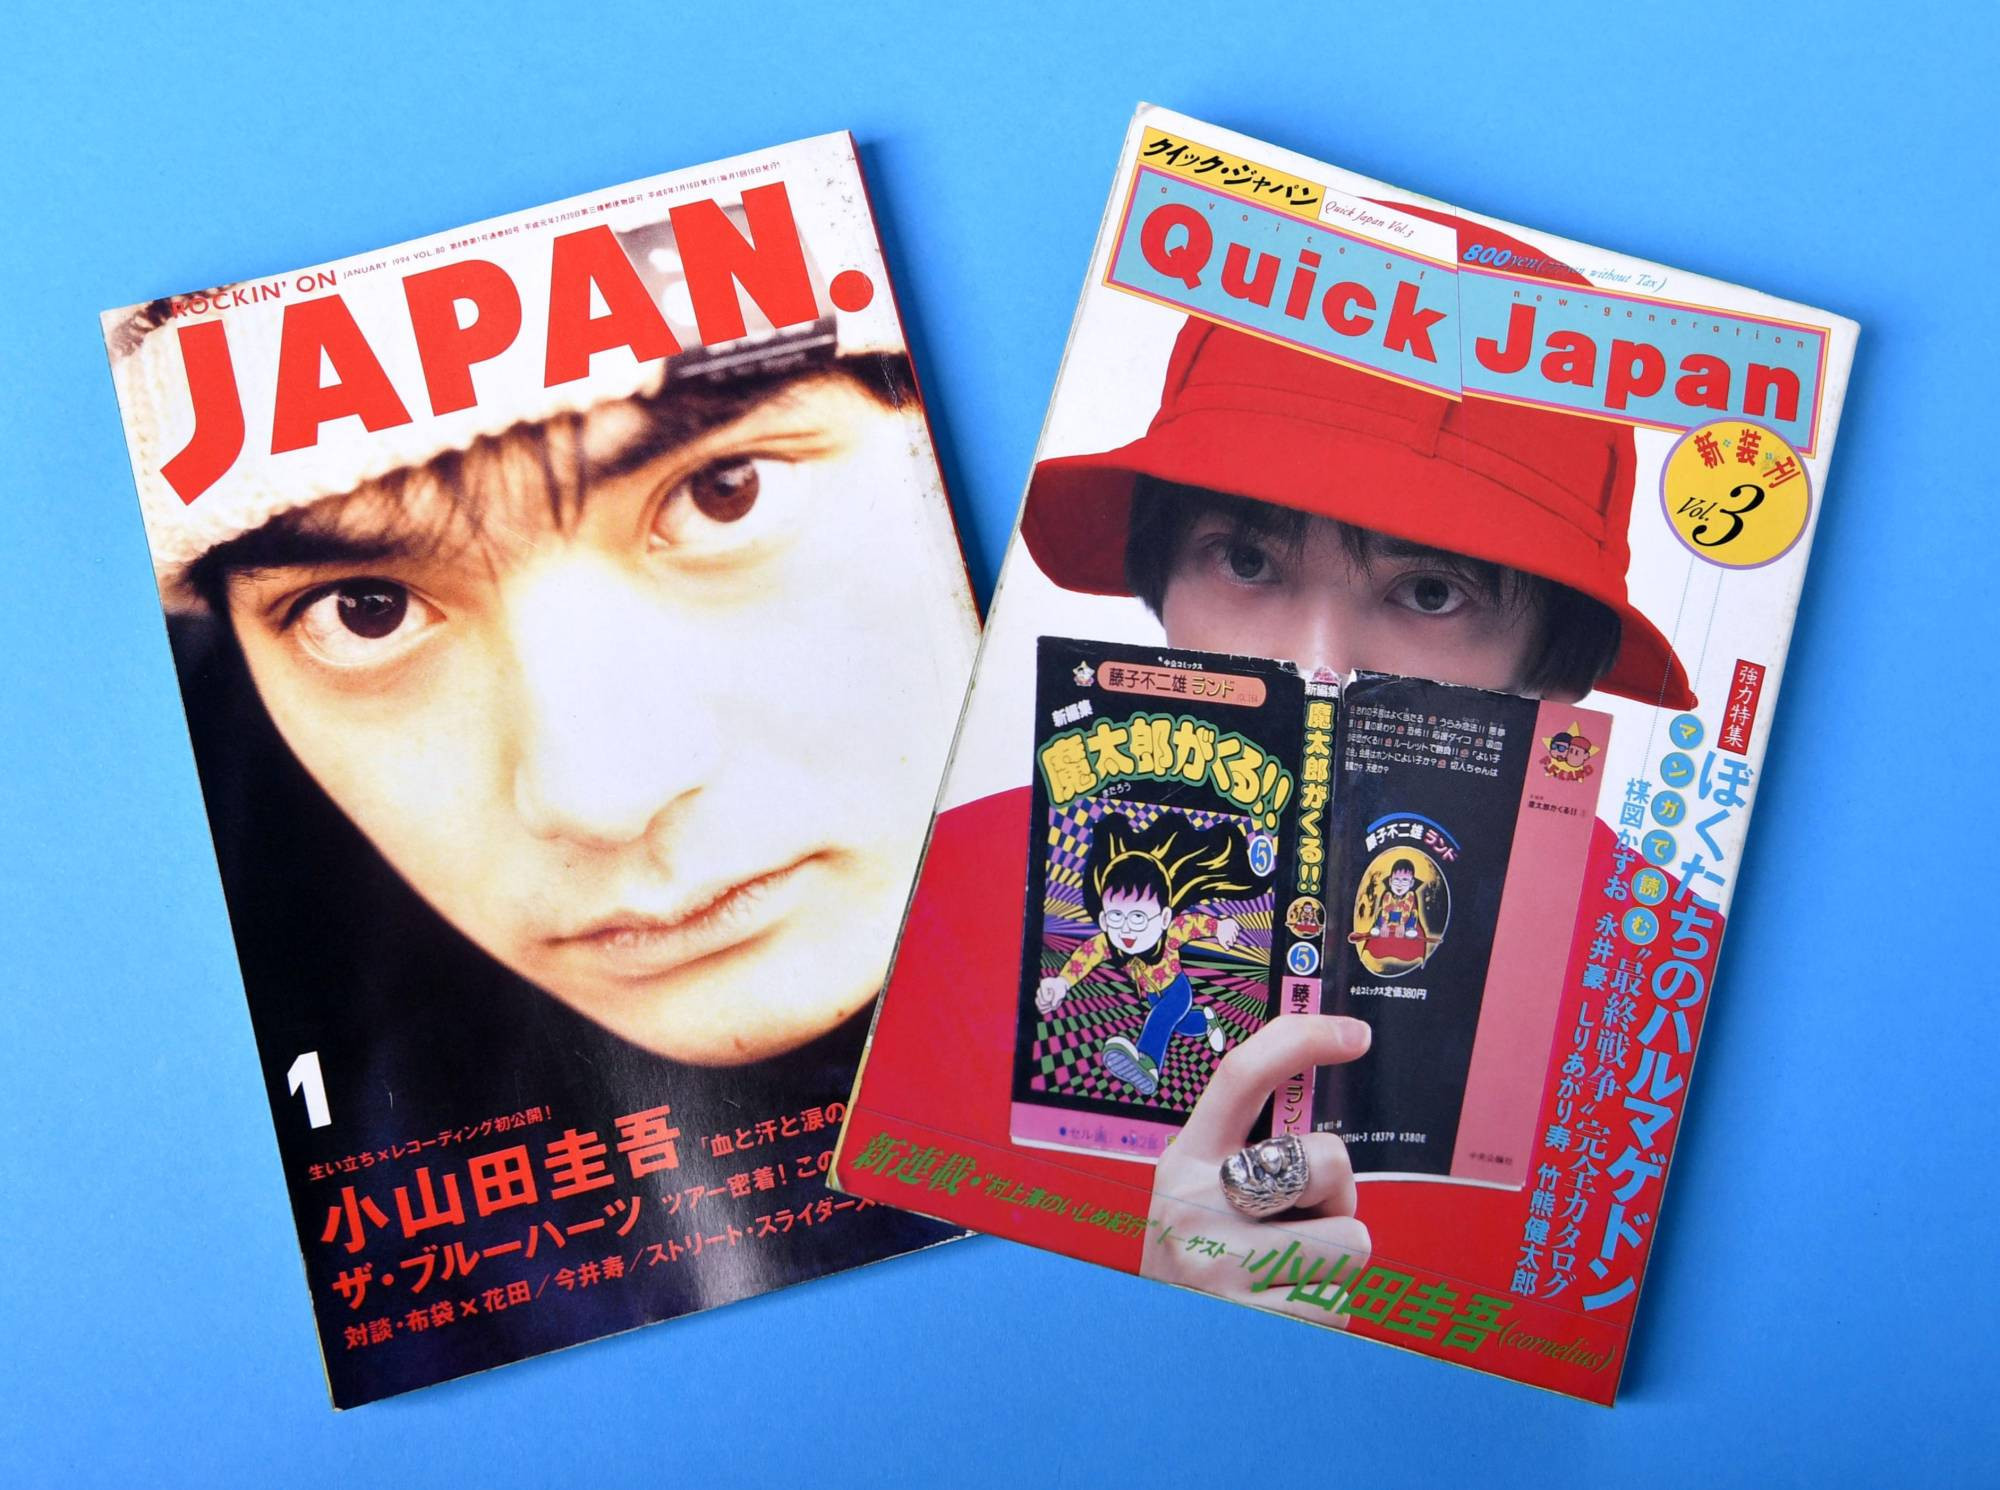 Keigo Oyamada gave the interviews to two Japanese magazines in 1994 and 1995 ©Twitter